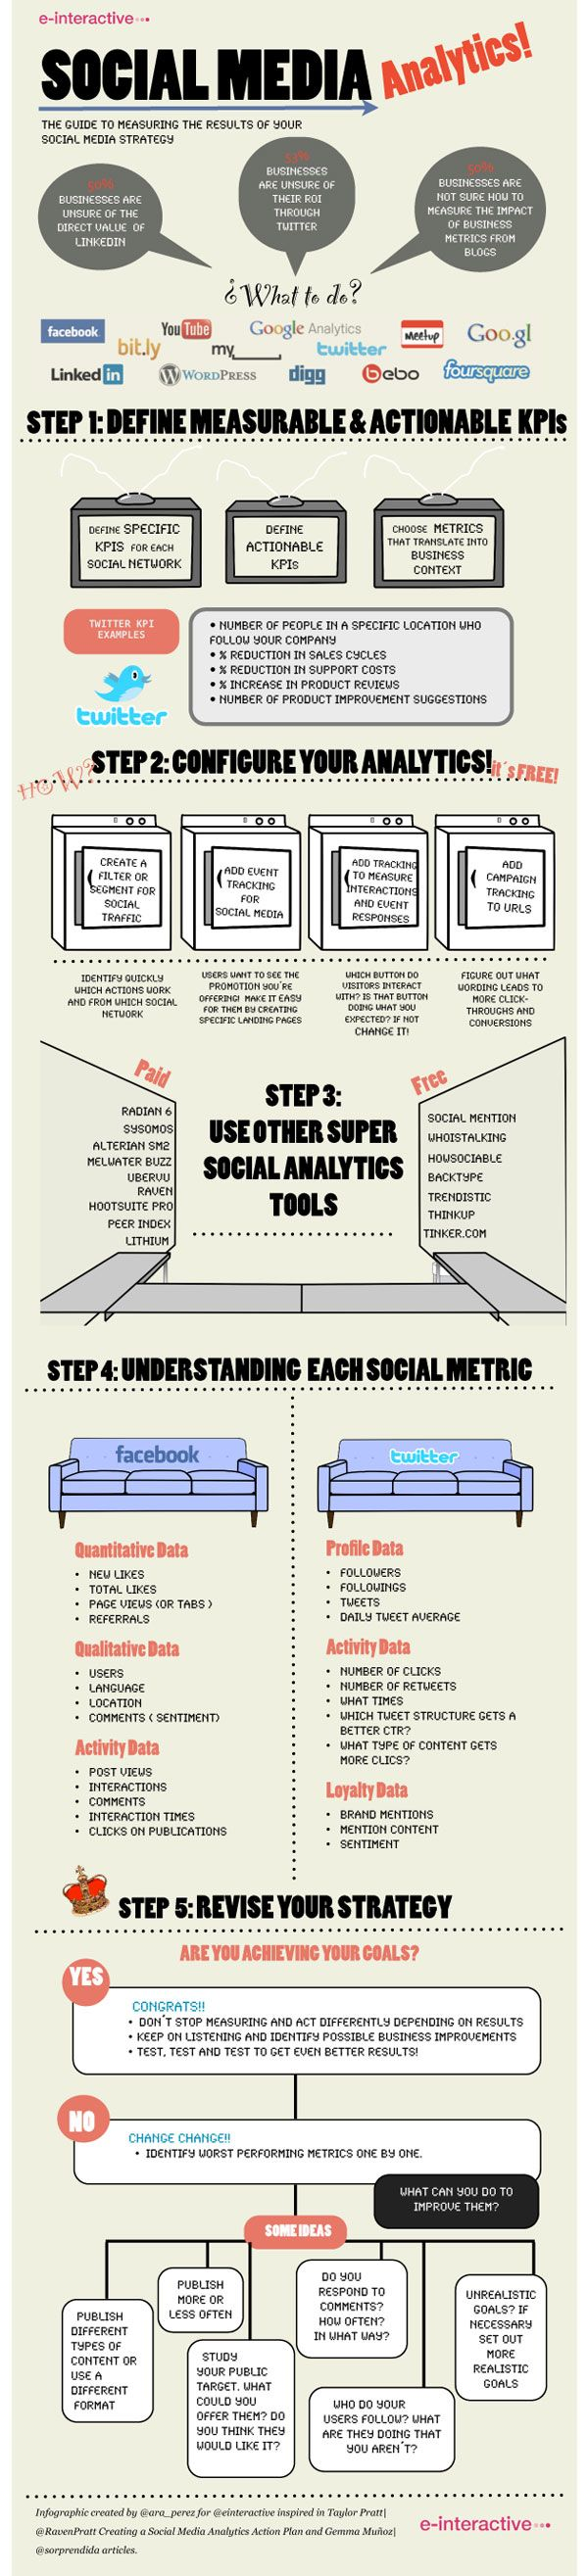 "Social media analytics    A guide by e-interactive to help you measure social media analytics. Stop running around like a headless chicken and start measuring your analytics! Don't be mistaken, social media analytics go much beyond just ""likes"" and ""followers""."